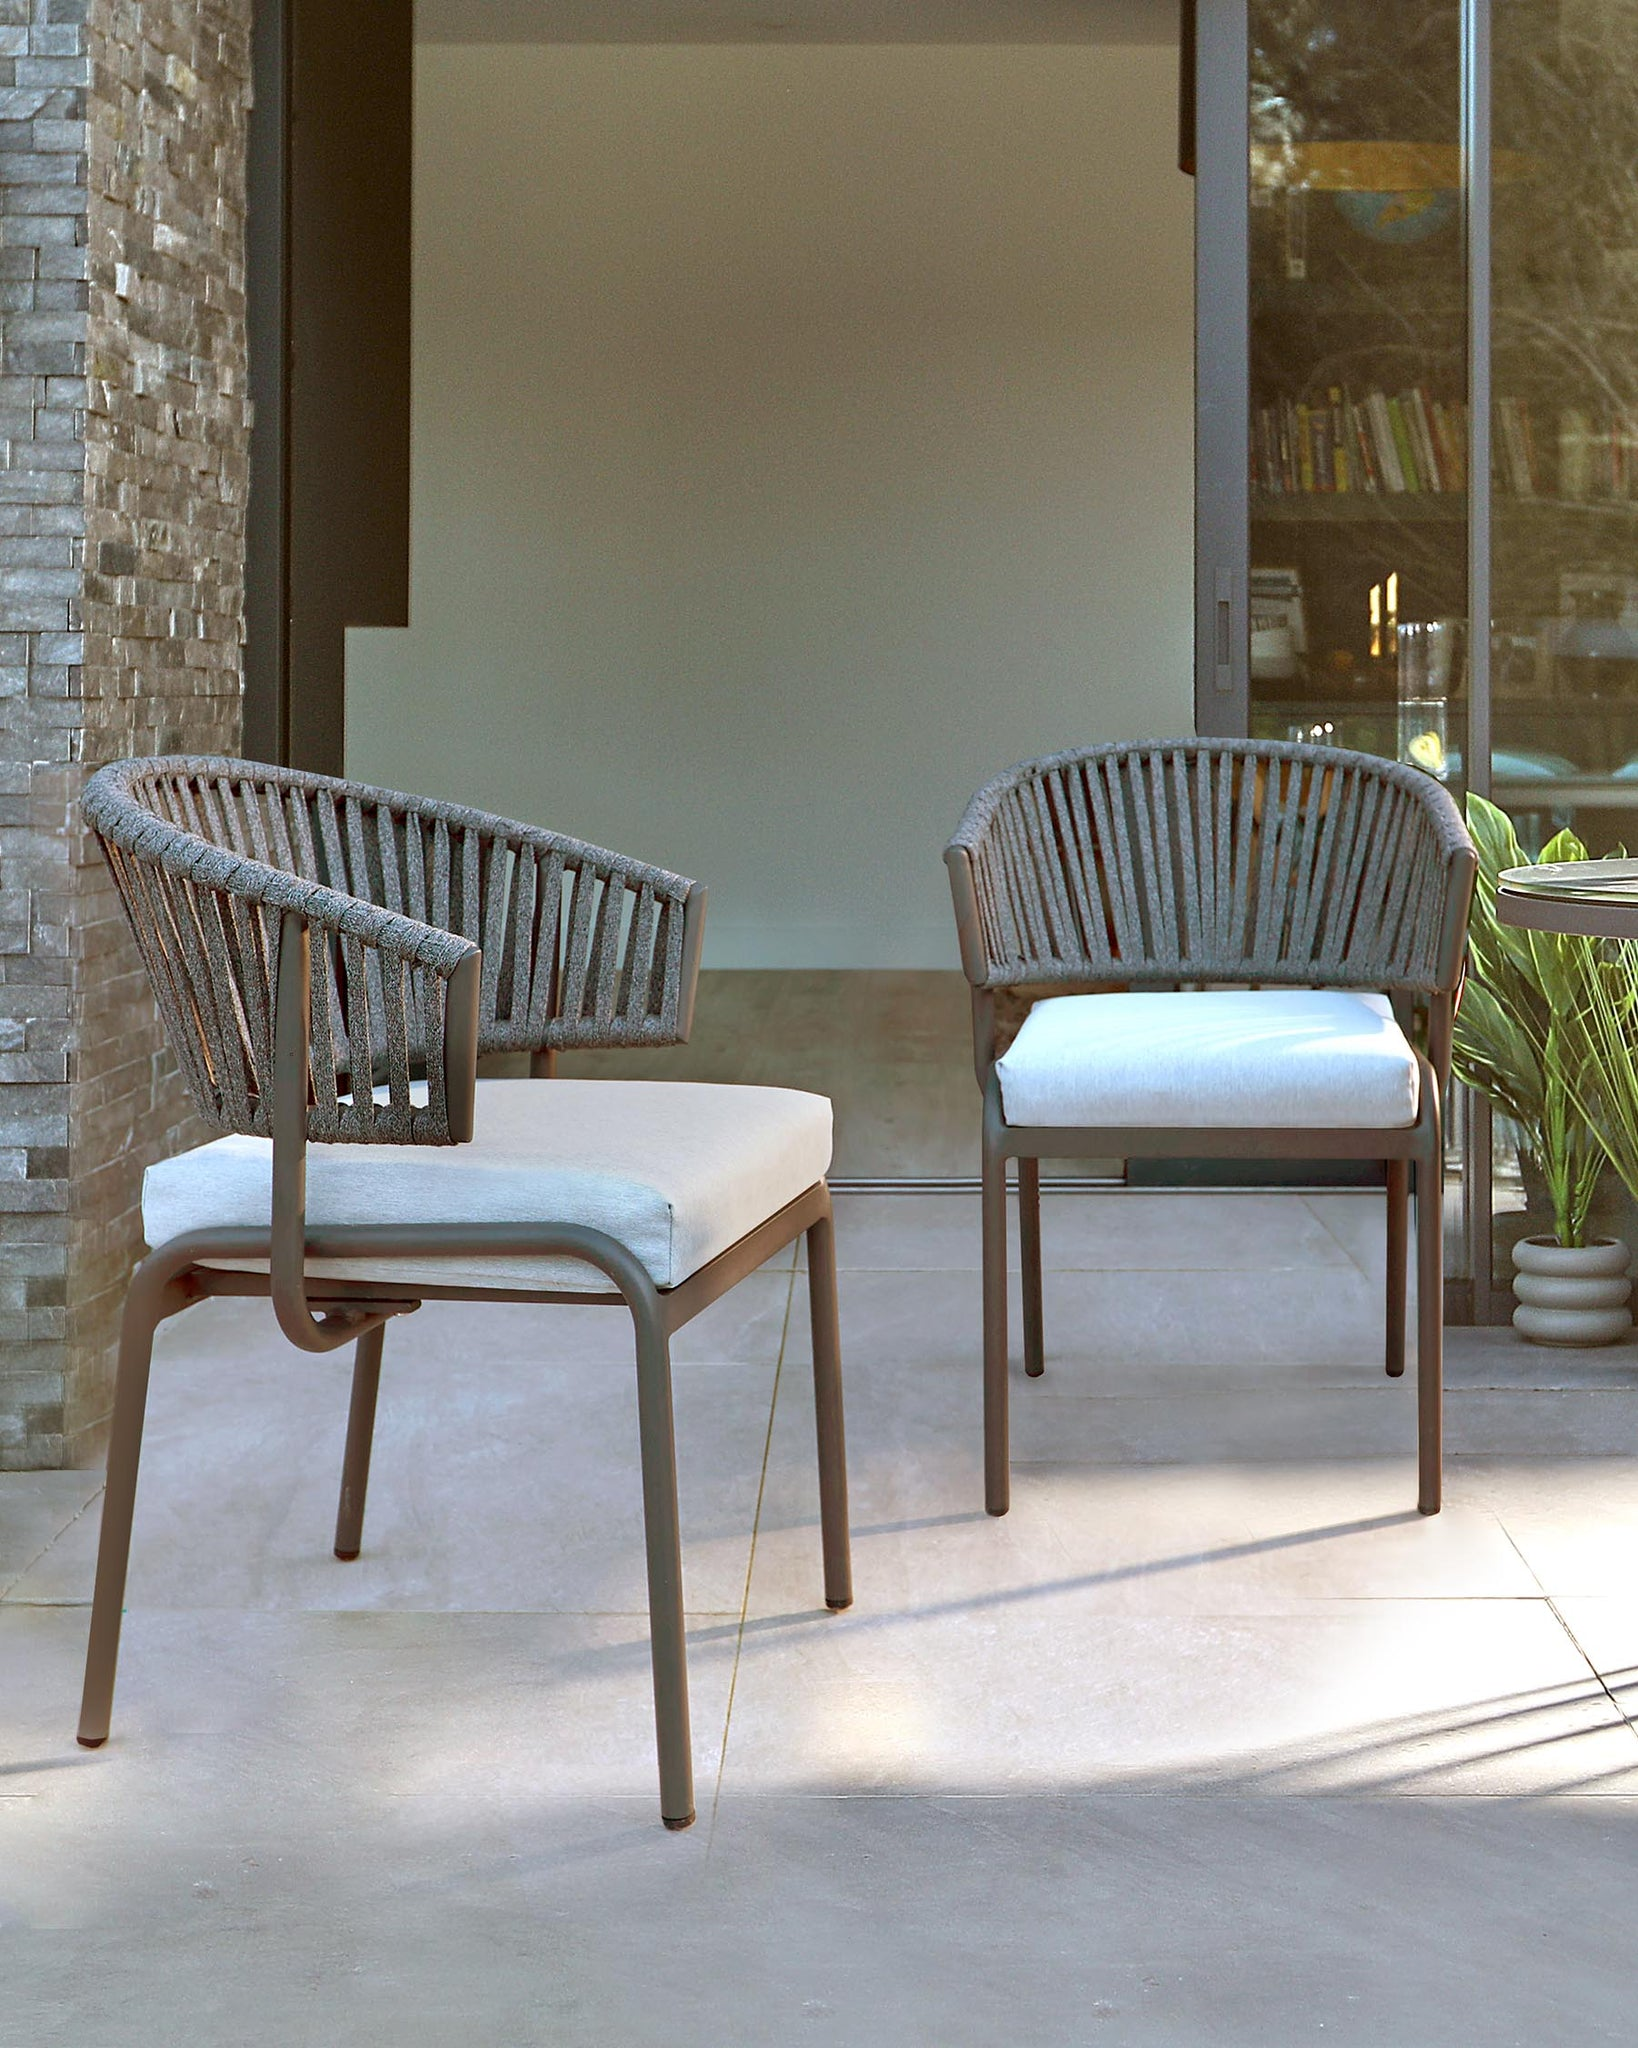 Ivy Garden Dining Chair - Set of 2